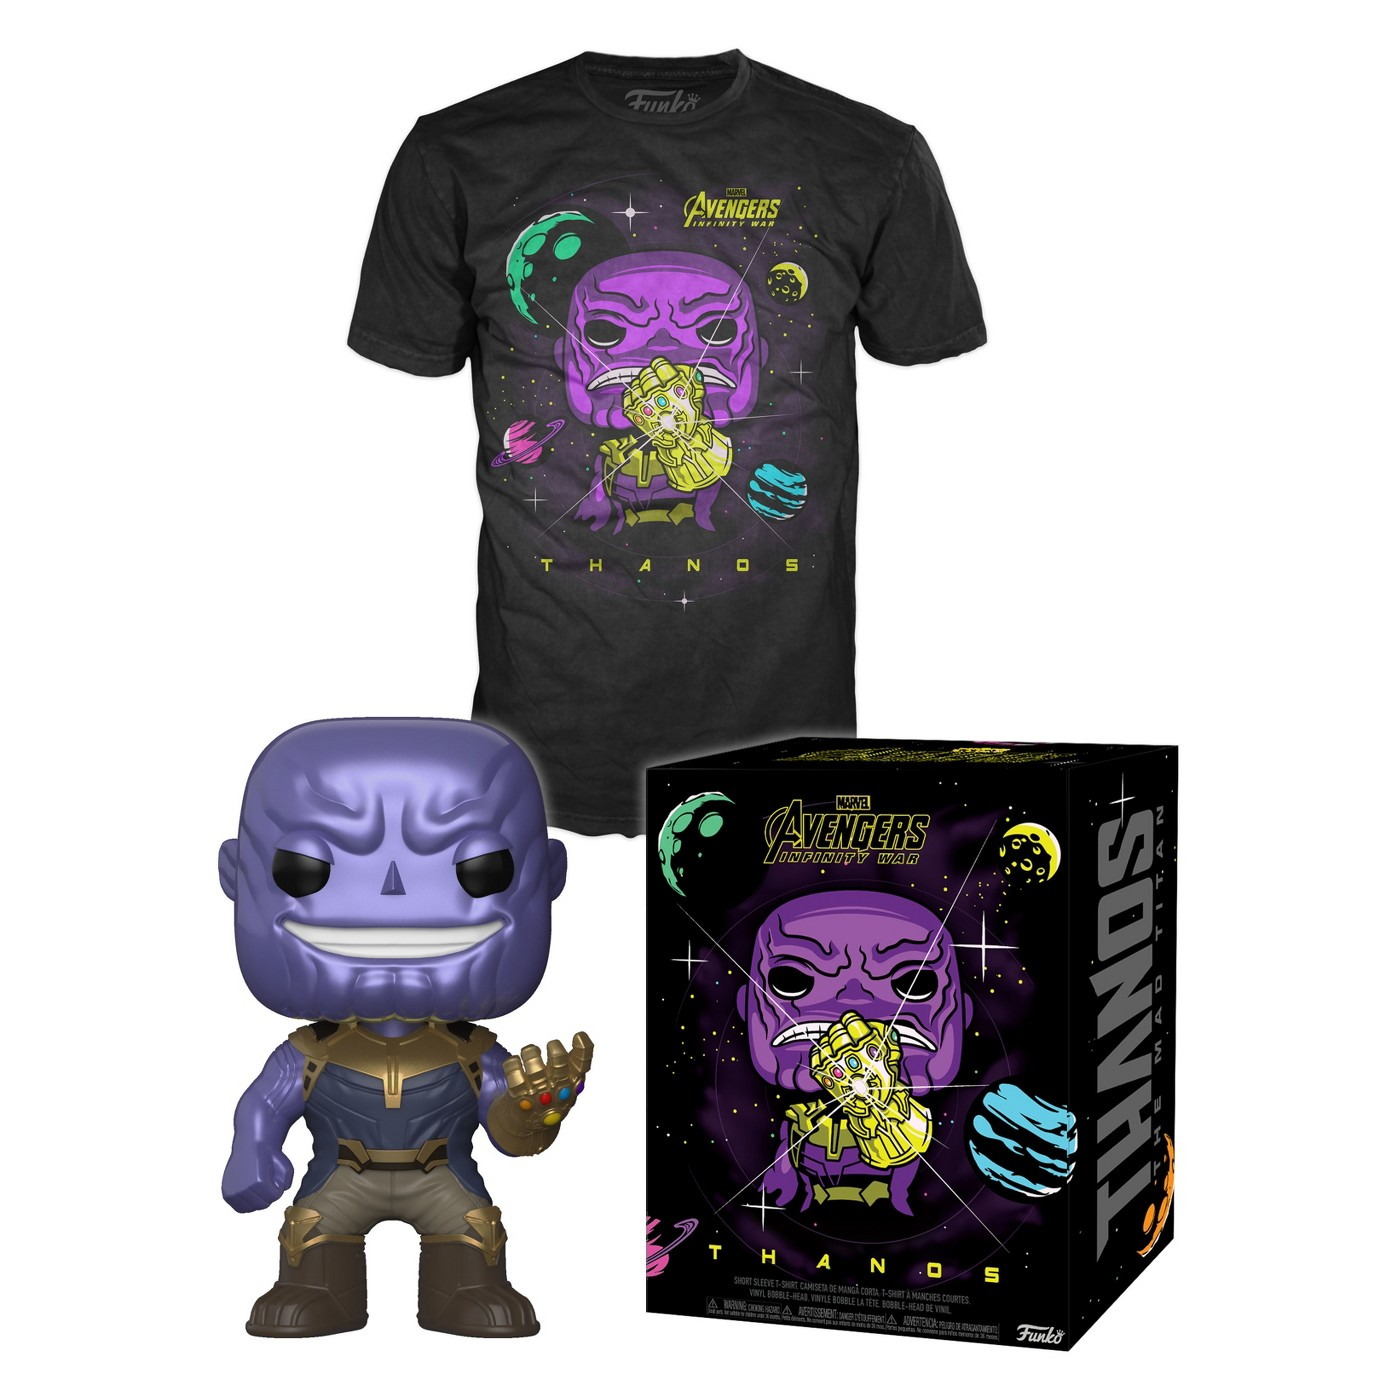 Target Exclusive Avengers Infinity War Thanos Pop! Figure   Pop! T-Shirt Box 01d9ee57f